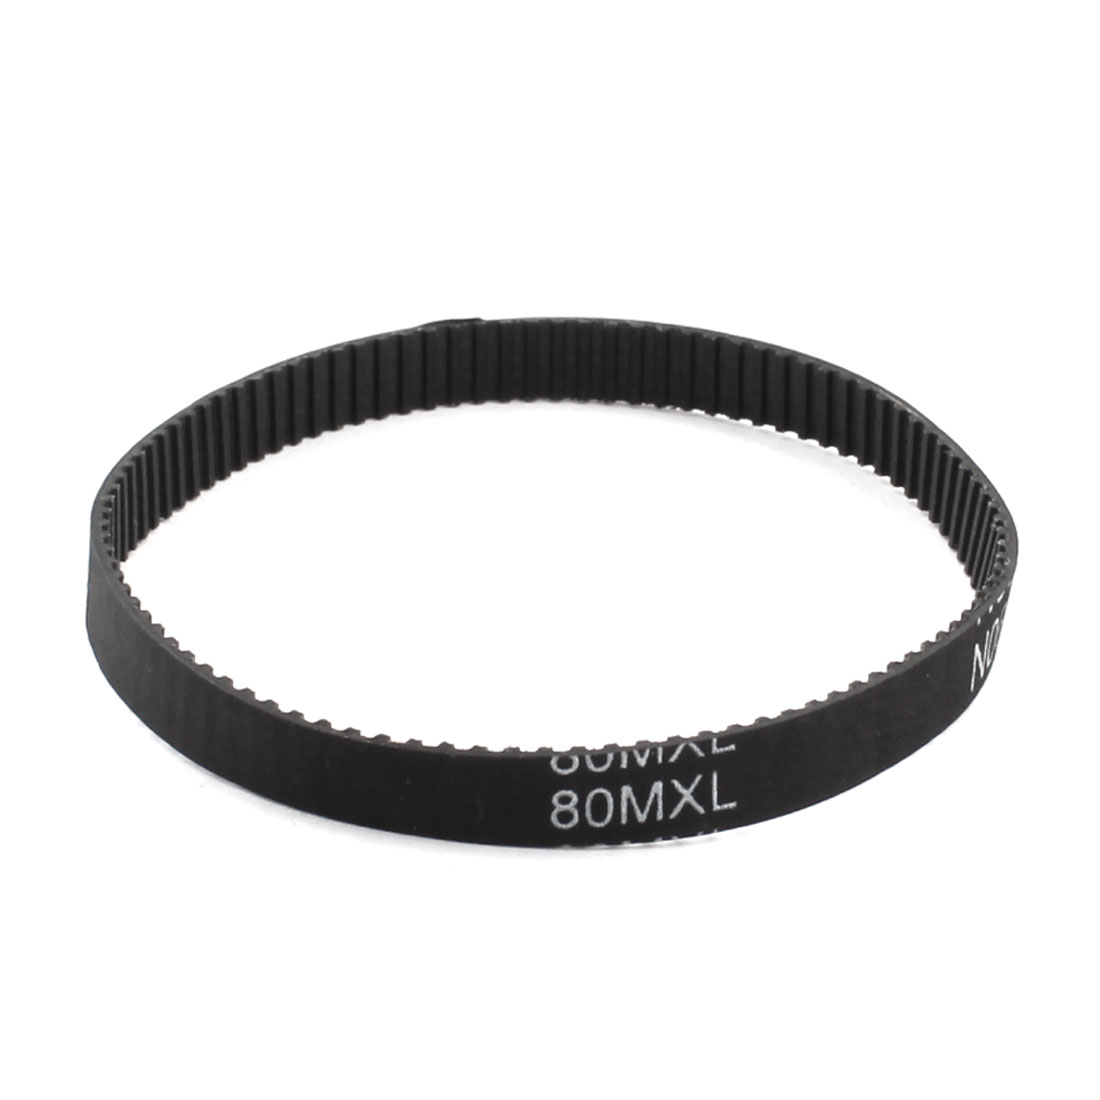 "80MXL025 100 Teeth 2.032mm Pitch 1/4"" Width Single Side Black Industrial Stepper Motor Groove Synchronous Timing Belt"